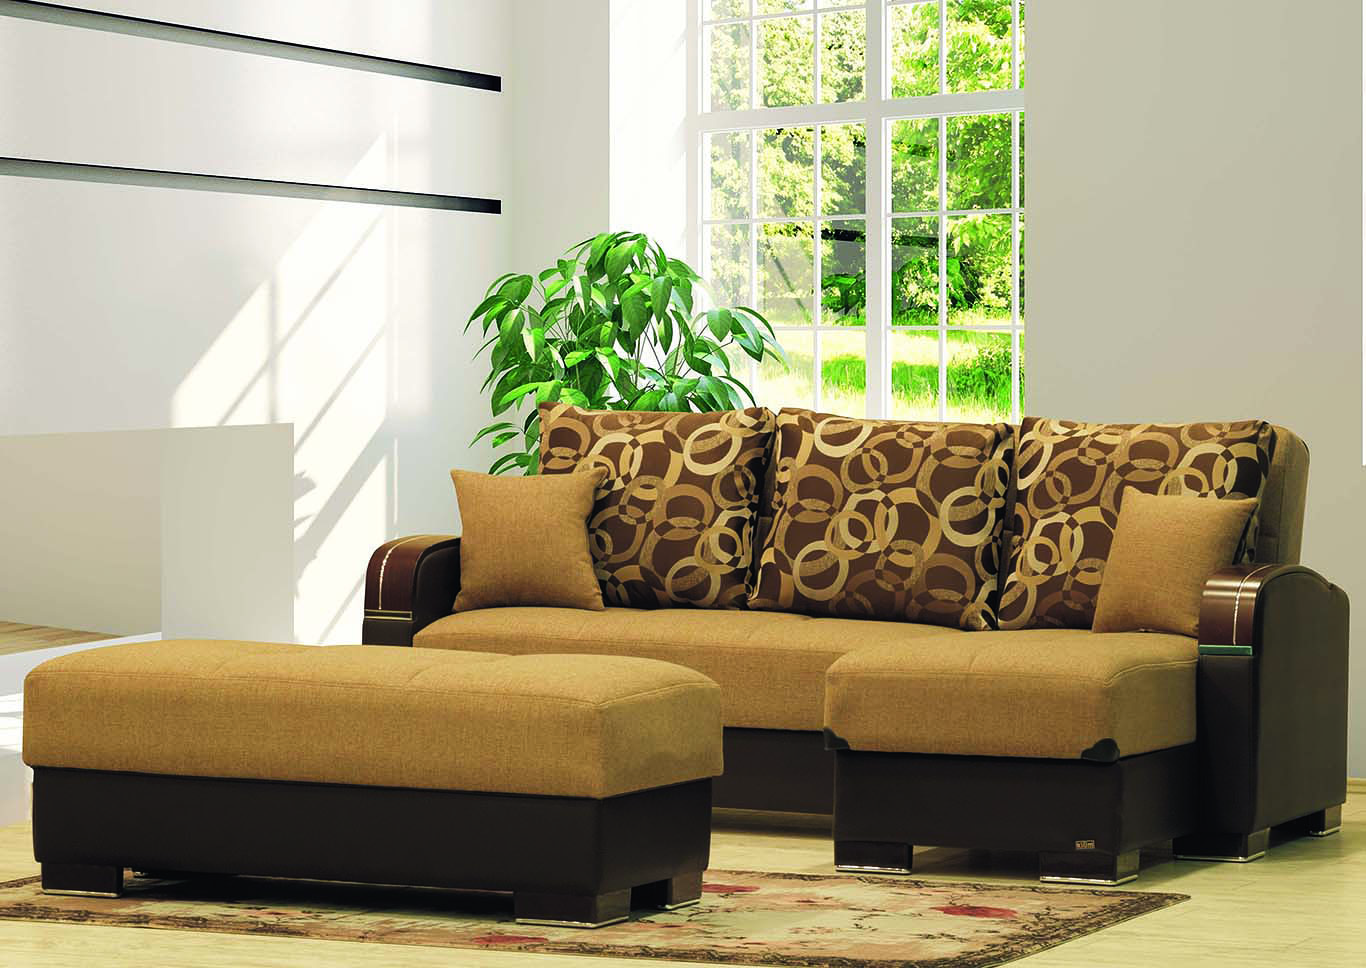 Maxymoda Brown Polyester Sectional L+C,CasaMode Functional Furniture